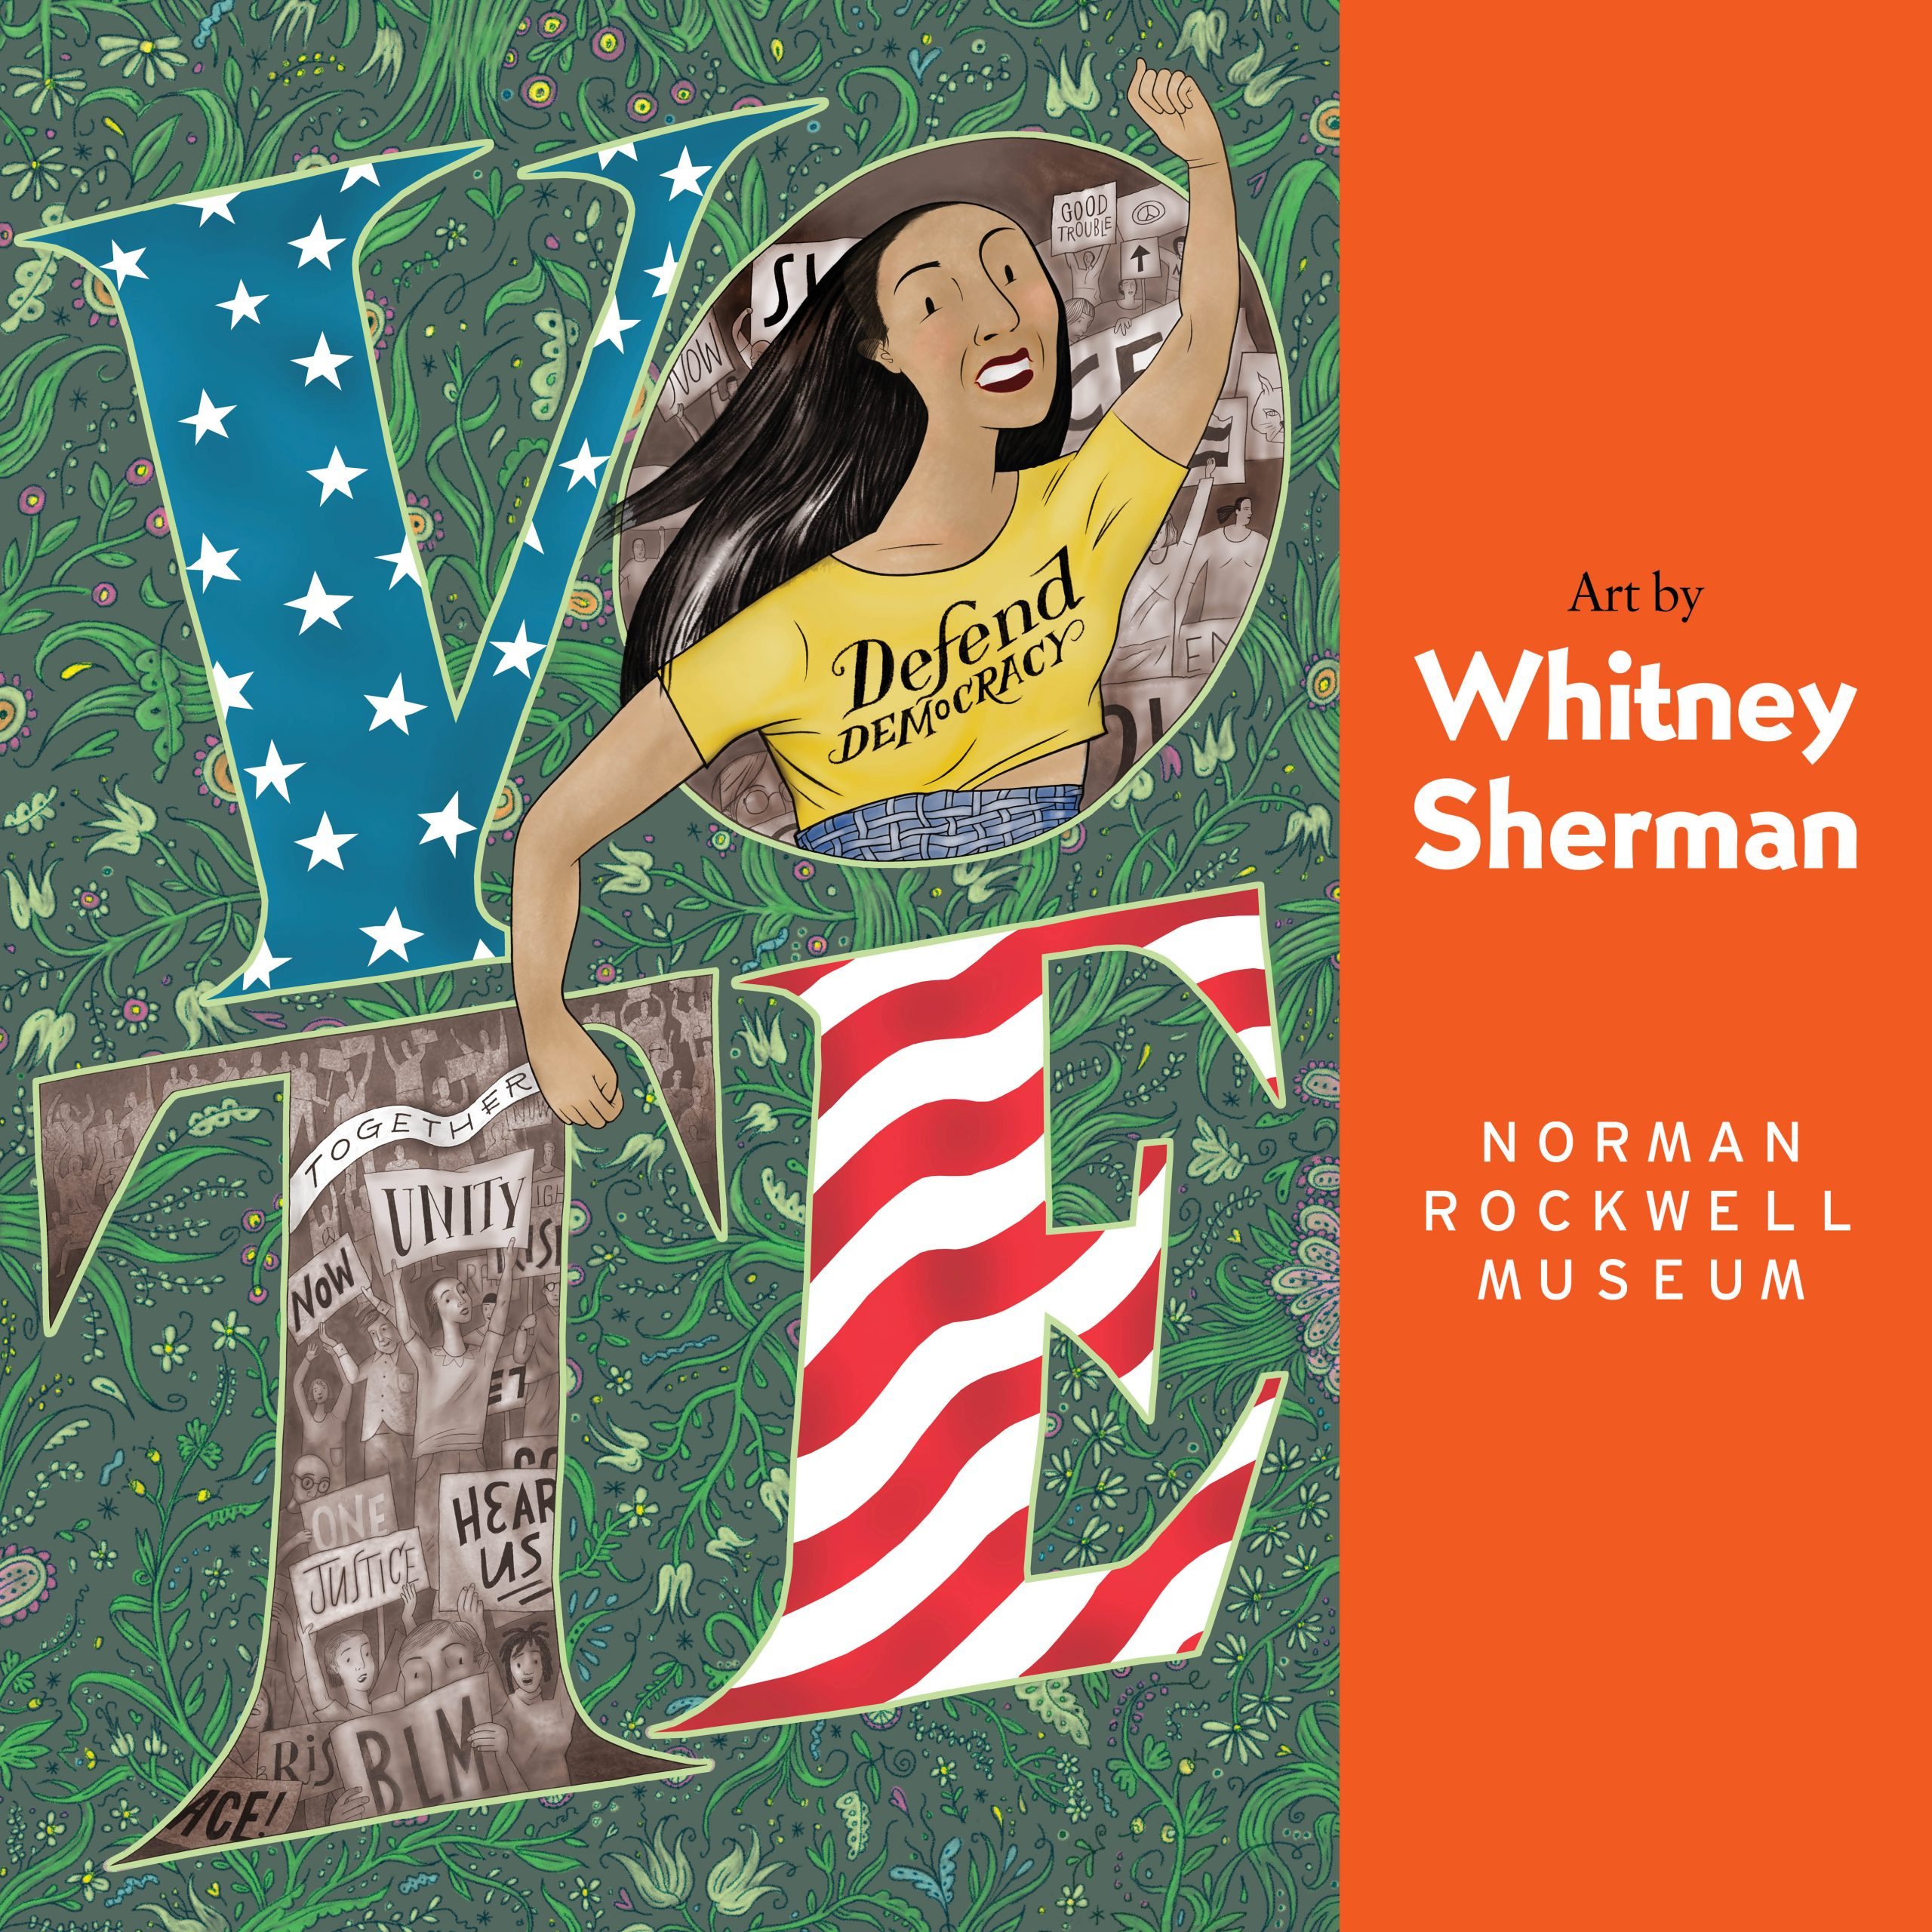 Whitney Sherman: Vote - Defend Democracy